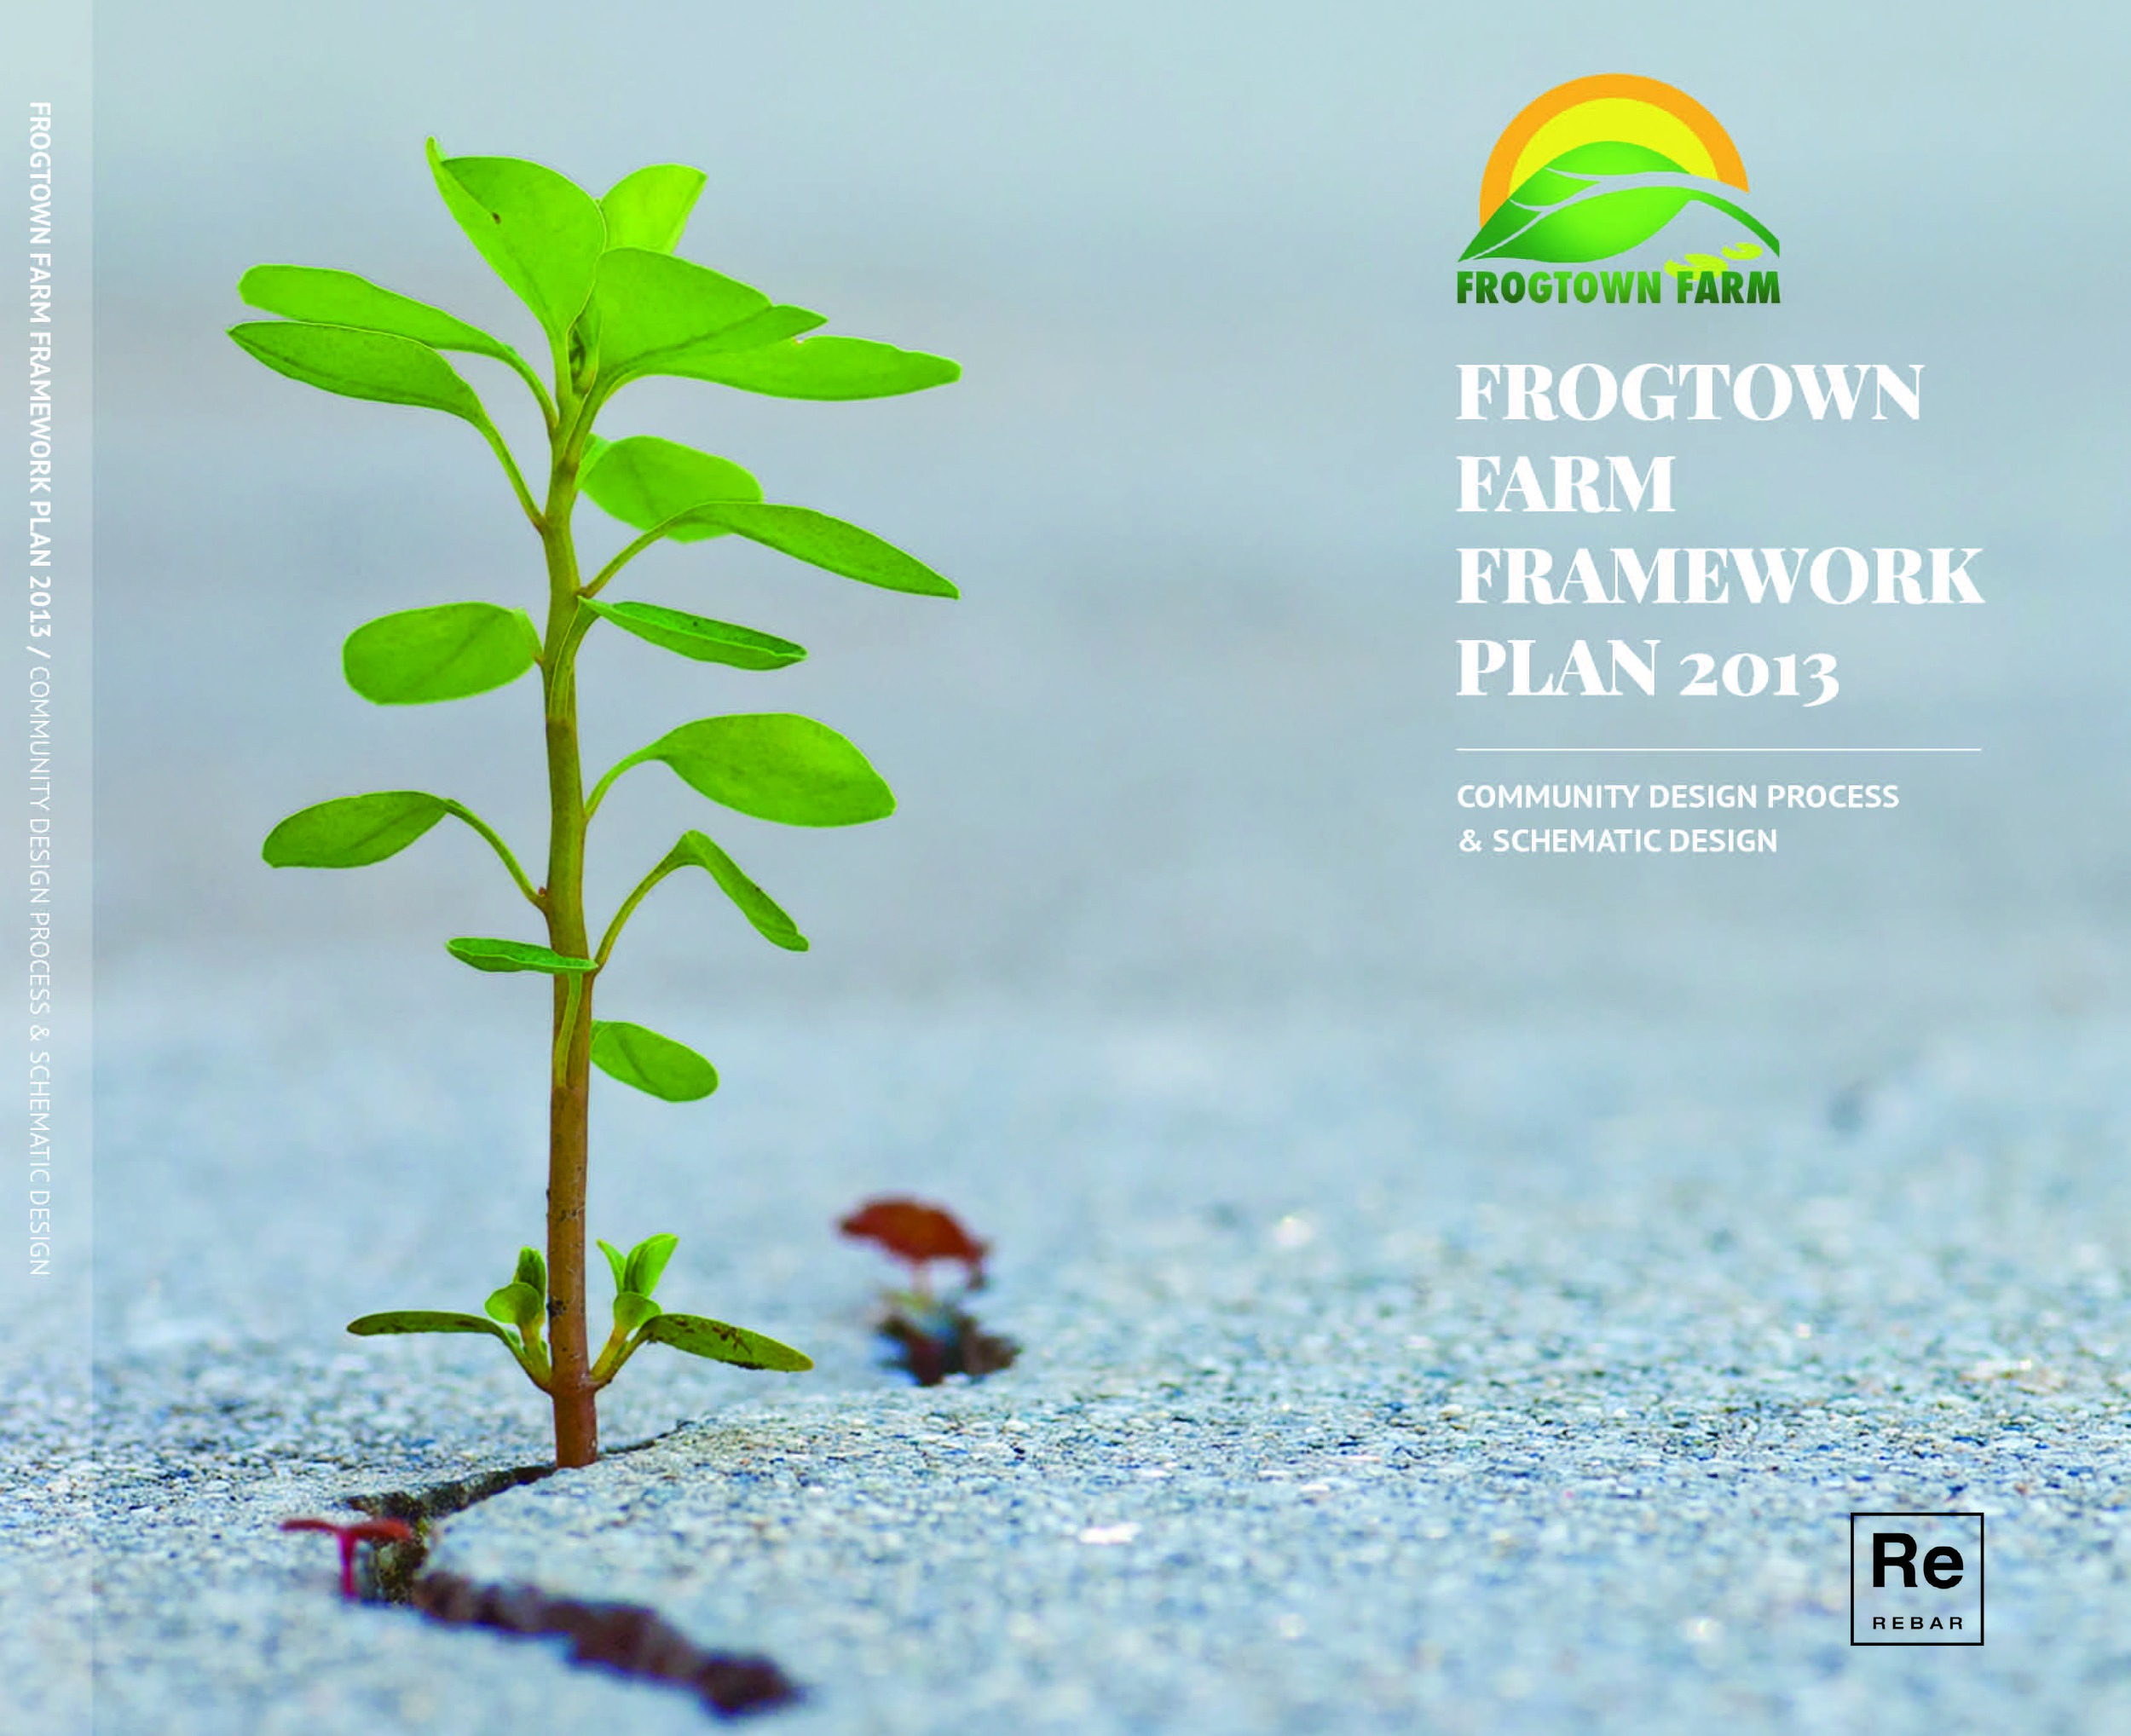 frogtown_farm_framework_final_web_Page_001.jpg